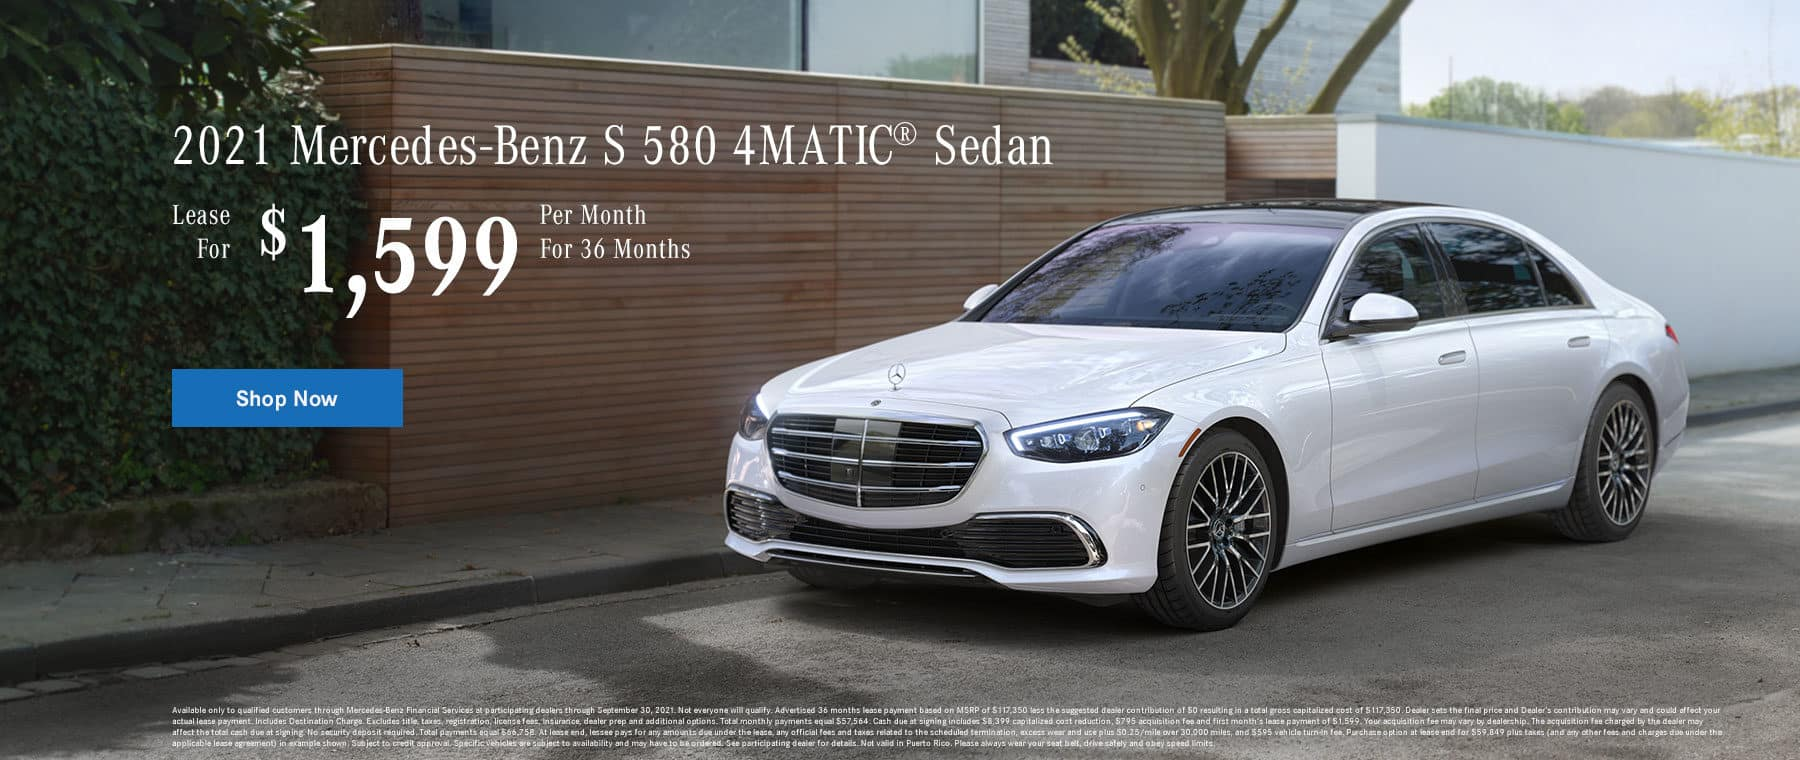 2021 Mercedes-Benz S 580 4MATIC® Sedan Lease for $1,599 Per Month for 36 Months